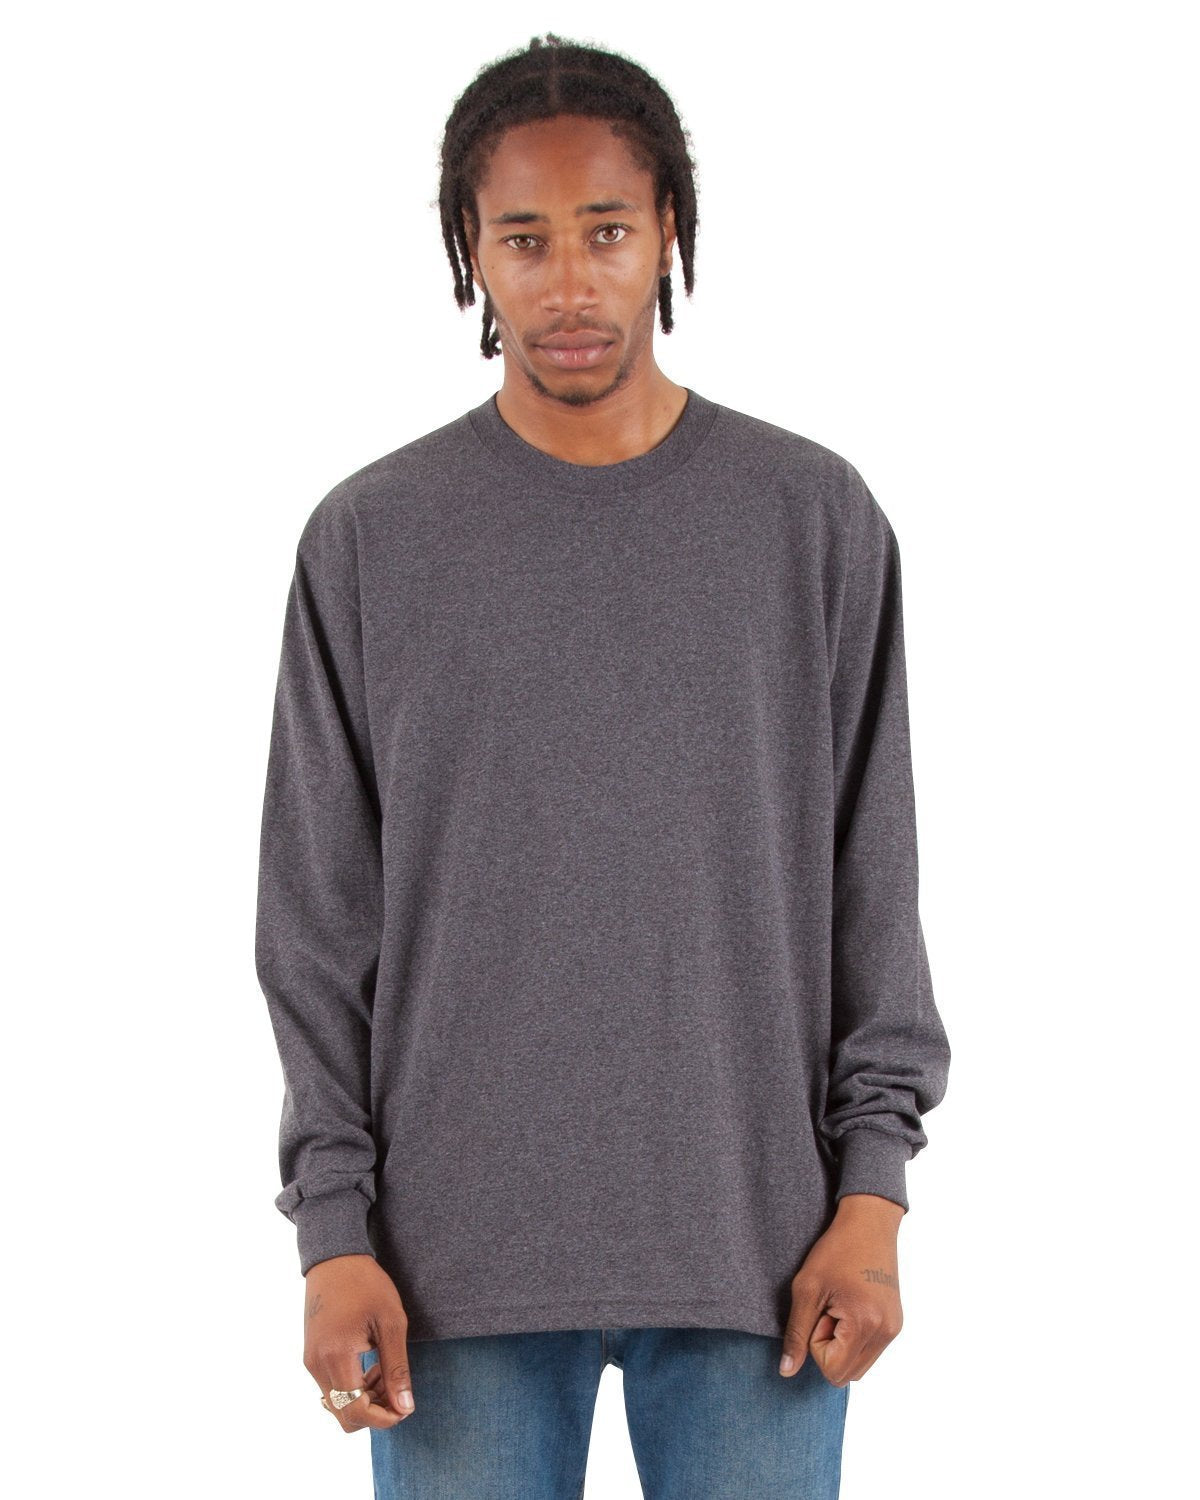 7.5 oz Max Heavyweight Long Sleeve - Large Sizes